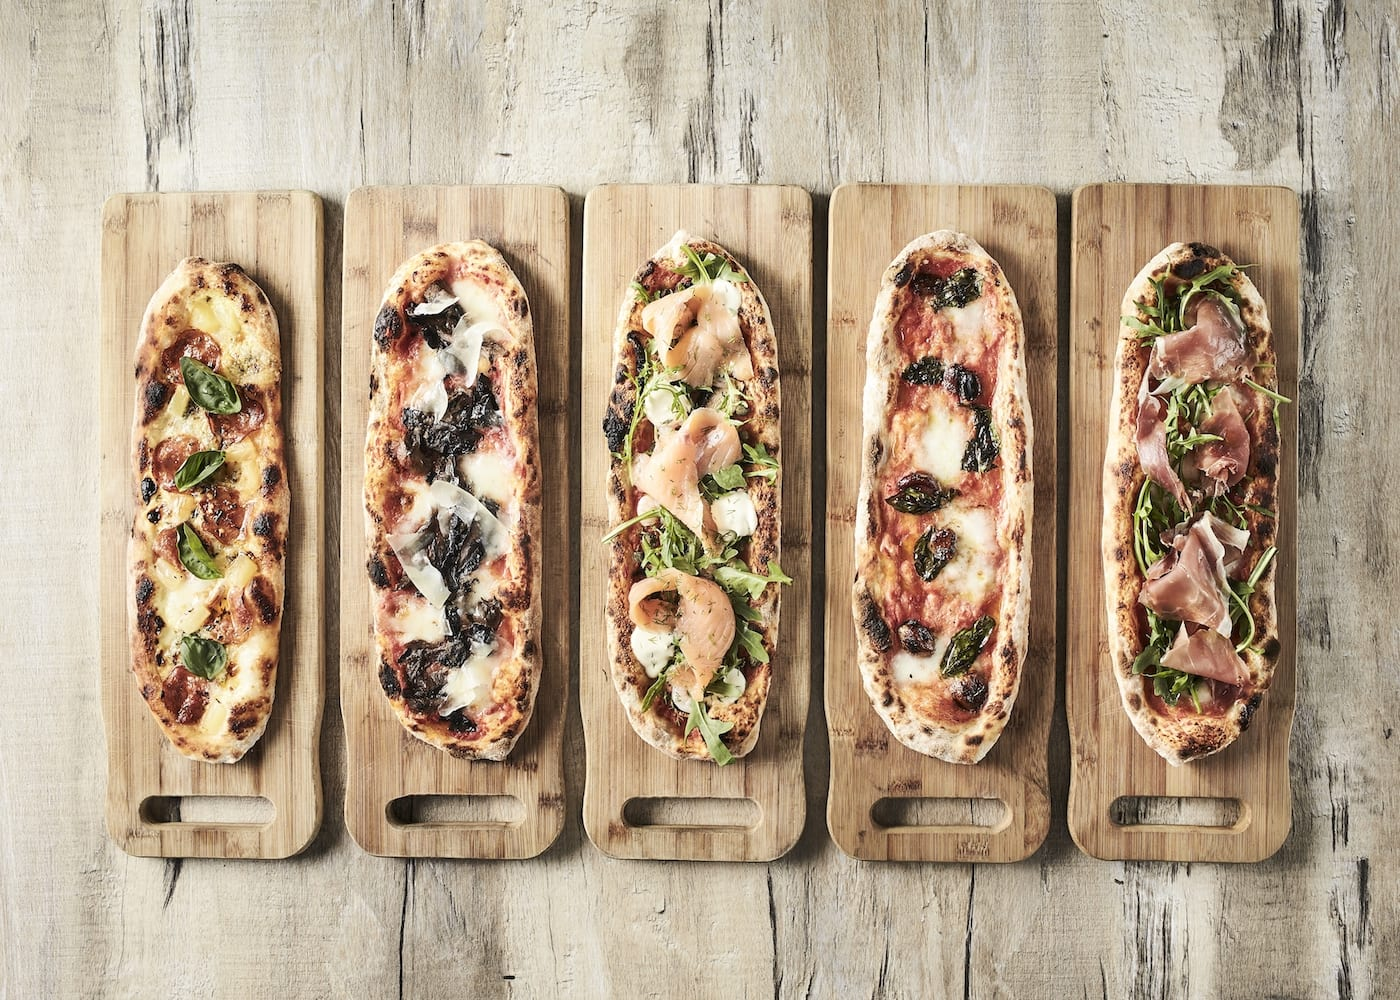 Family friendly pizza in Singapore: Plank Sourdough Pizza